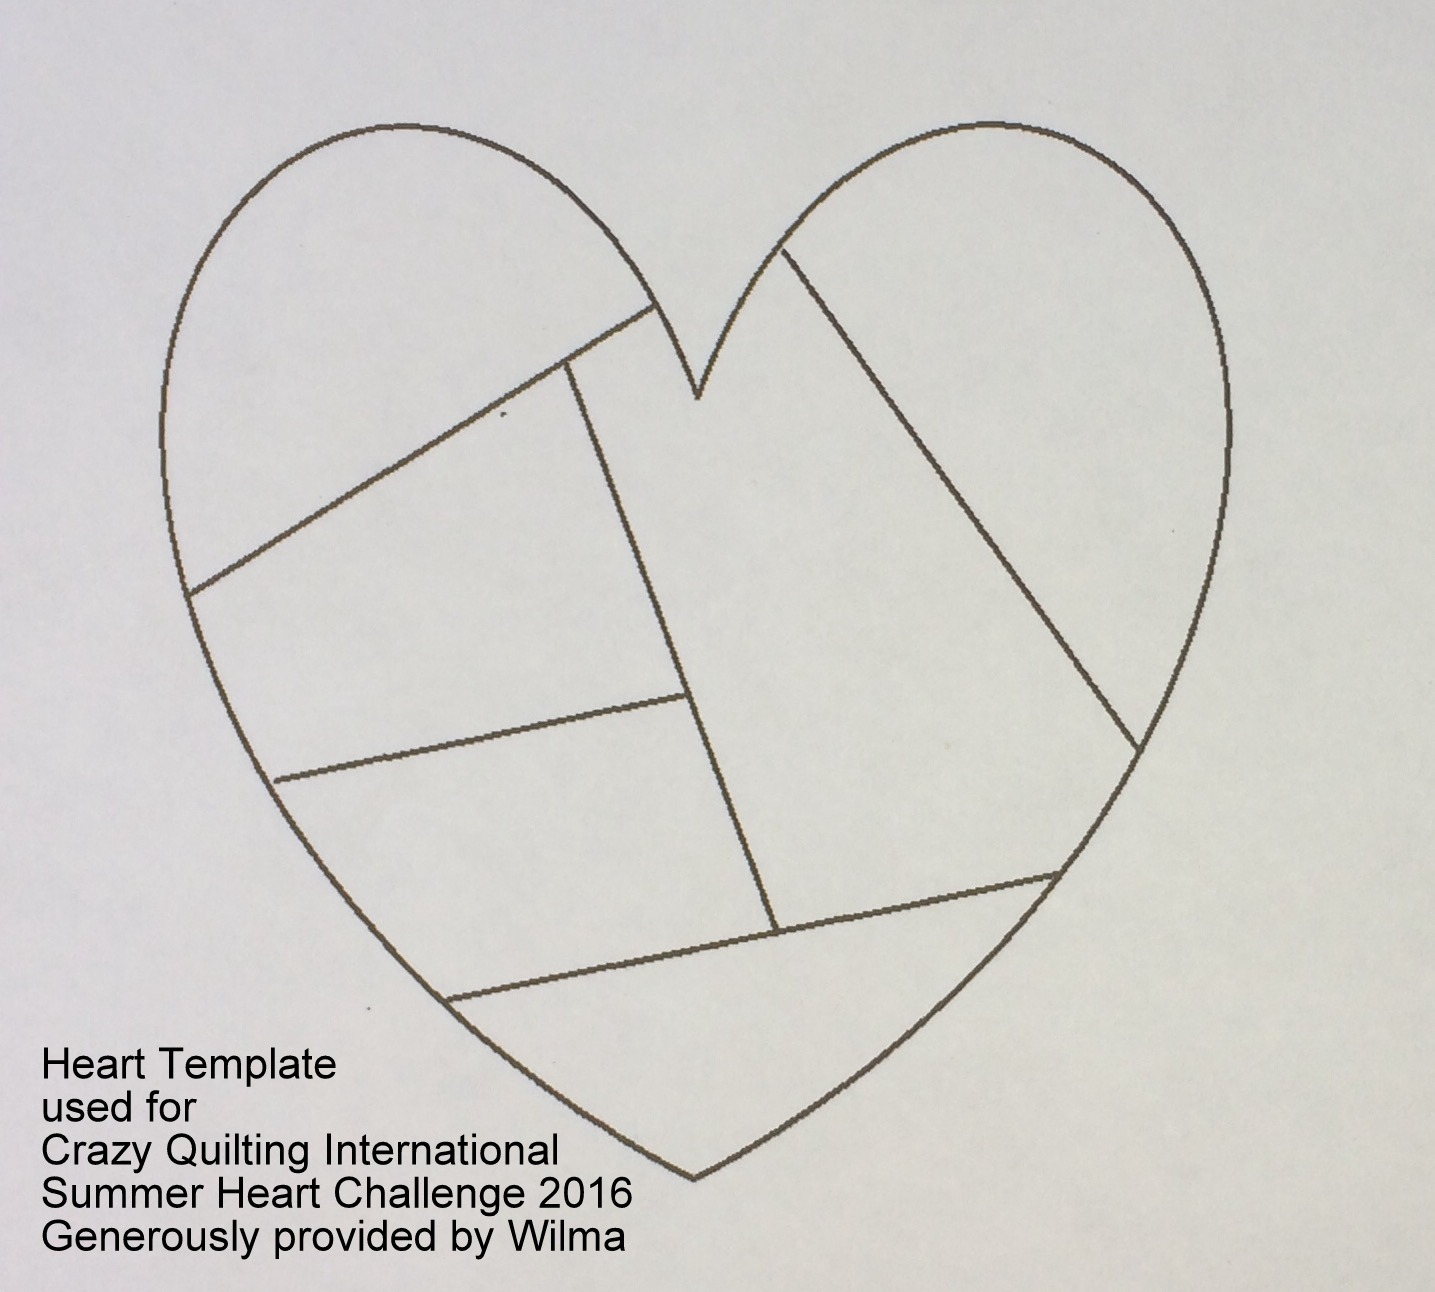 CRAZY QUILTING INTERNATIONAL